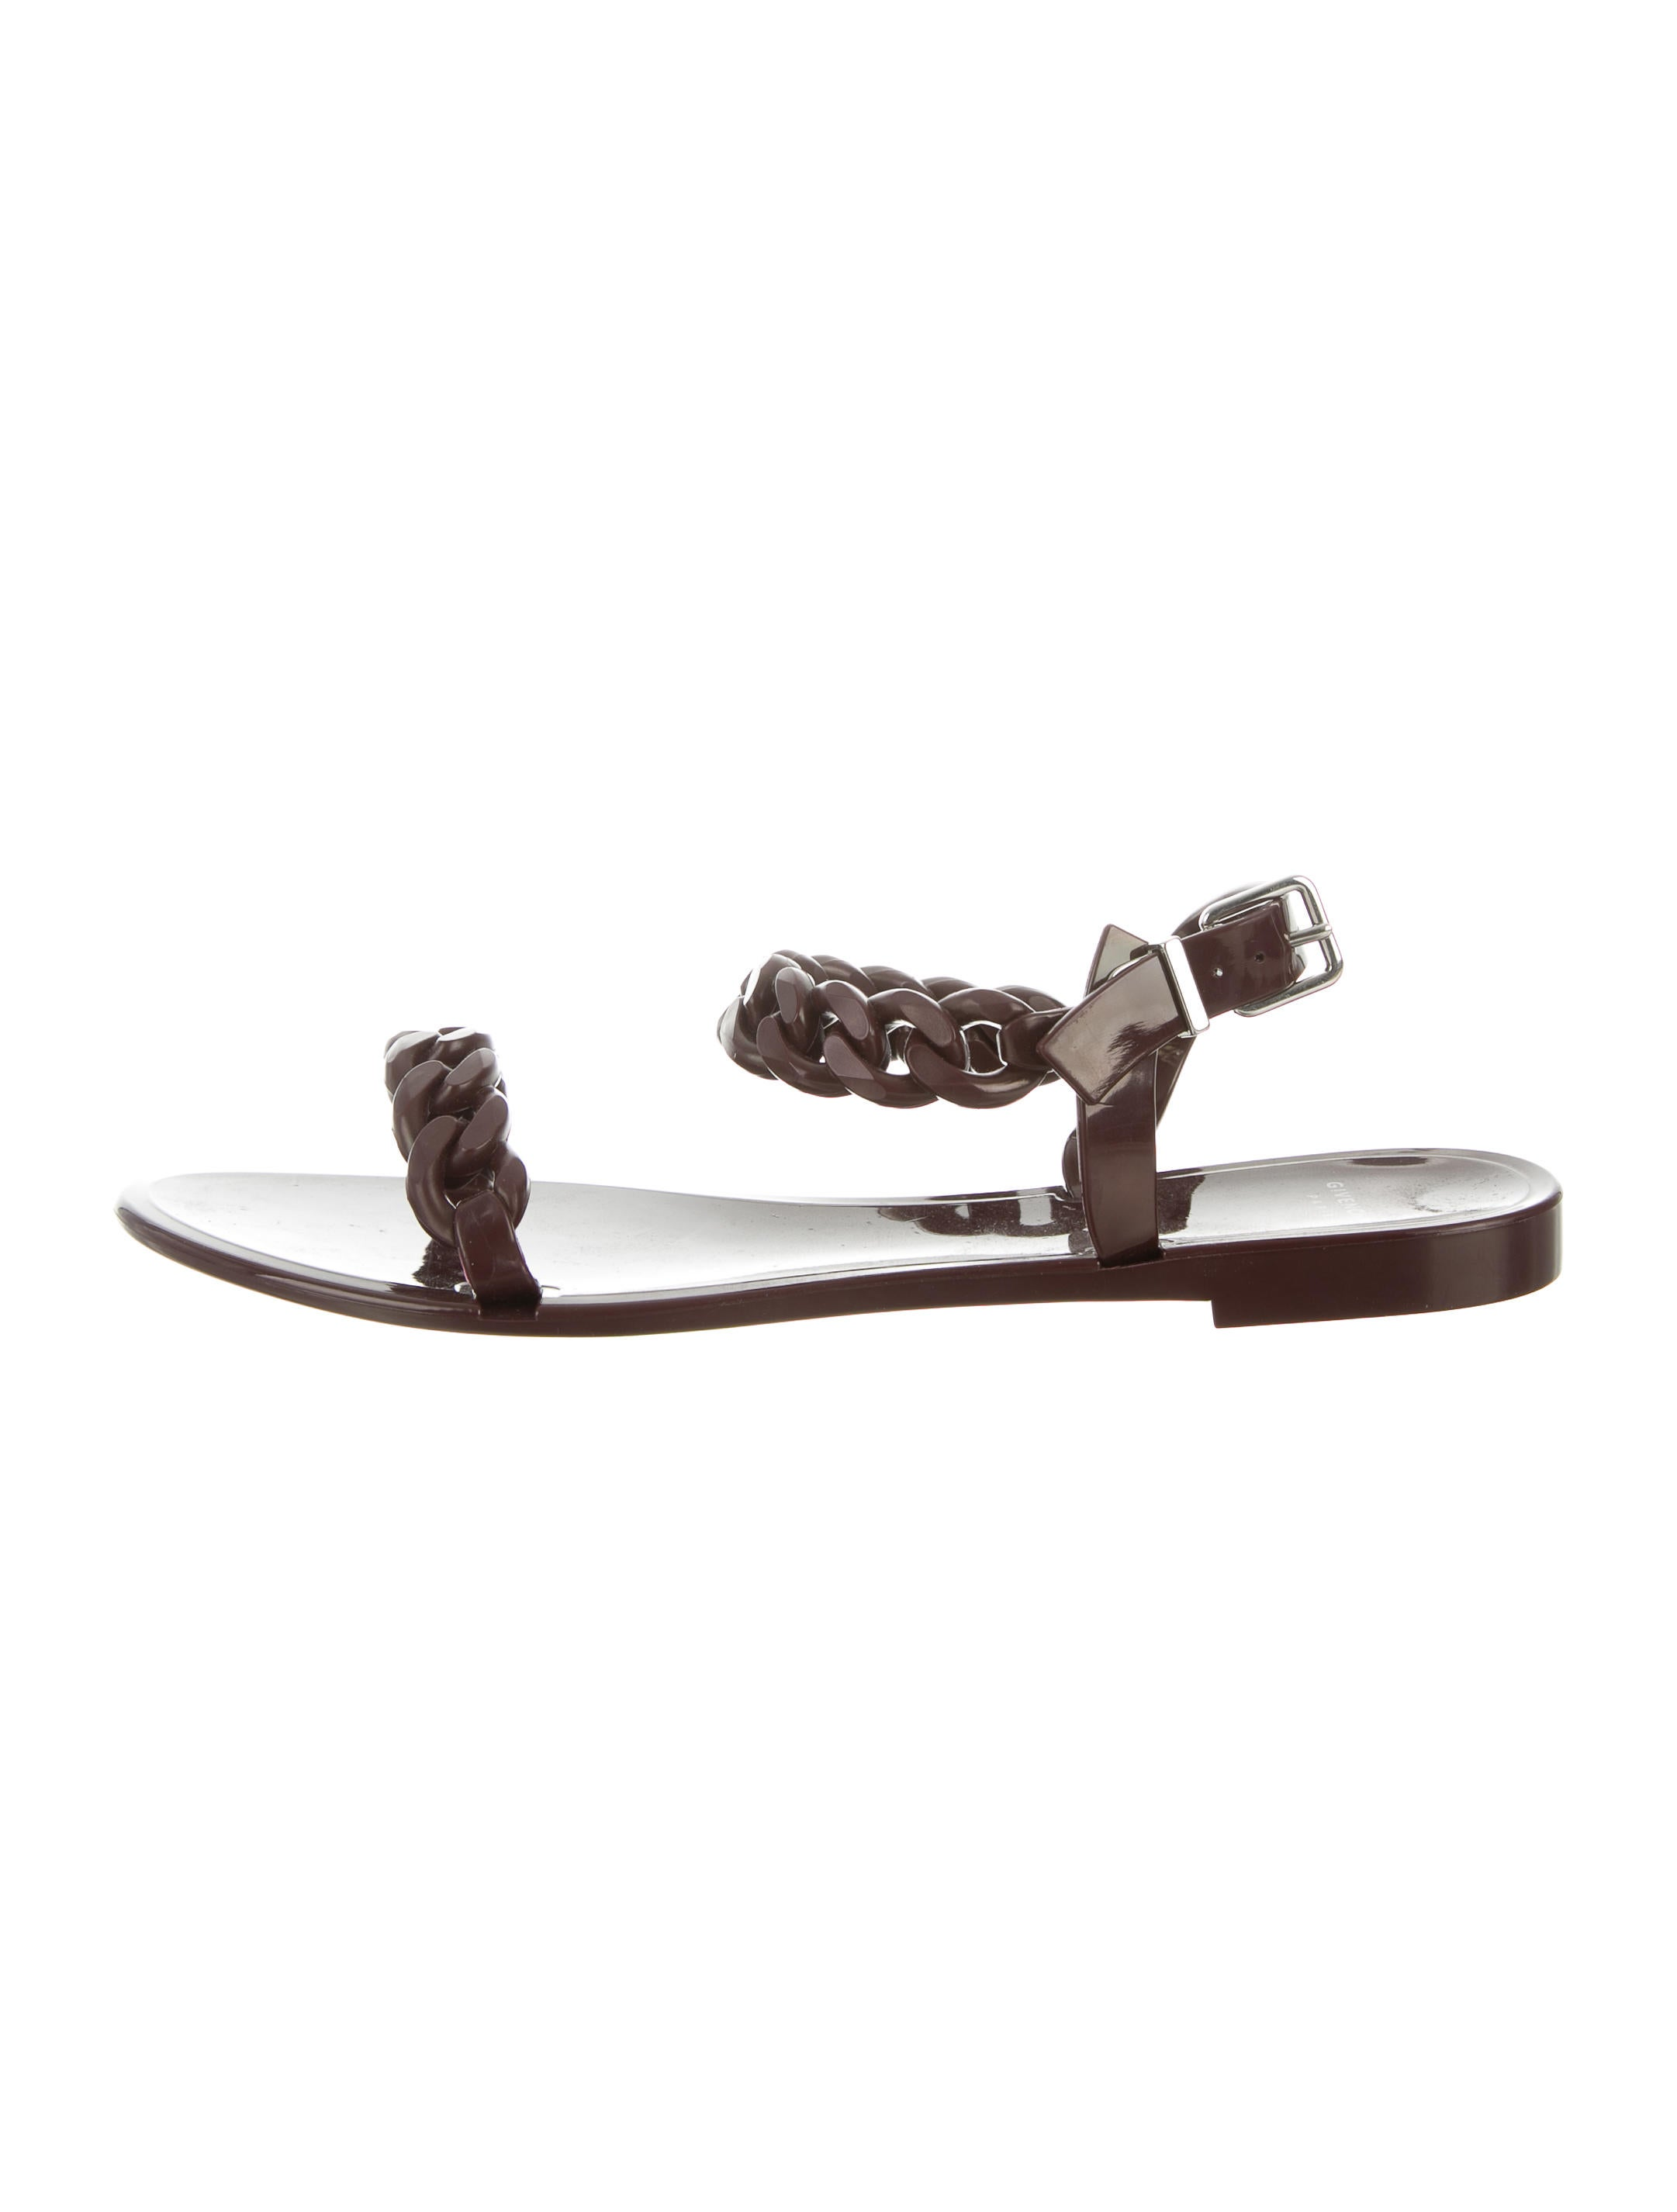 1b6557c1cb7 Givenchy Chain-Link Jelly Sandals - Shoes - GIV34072